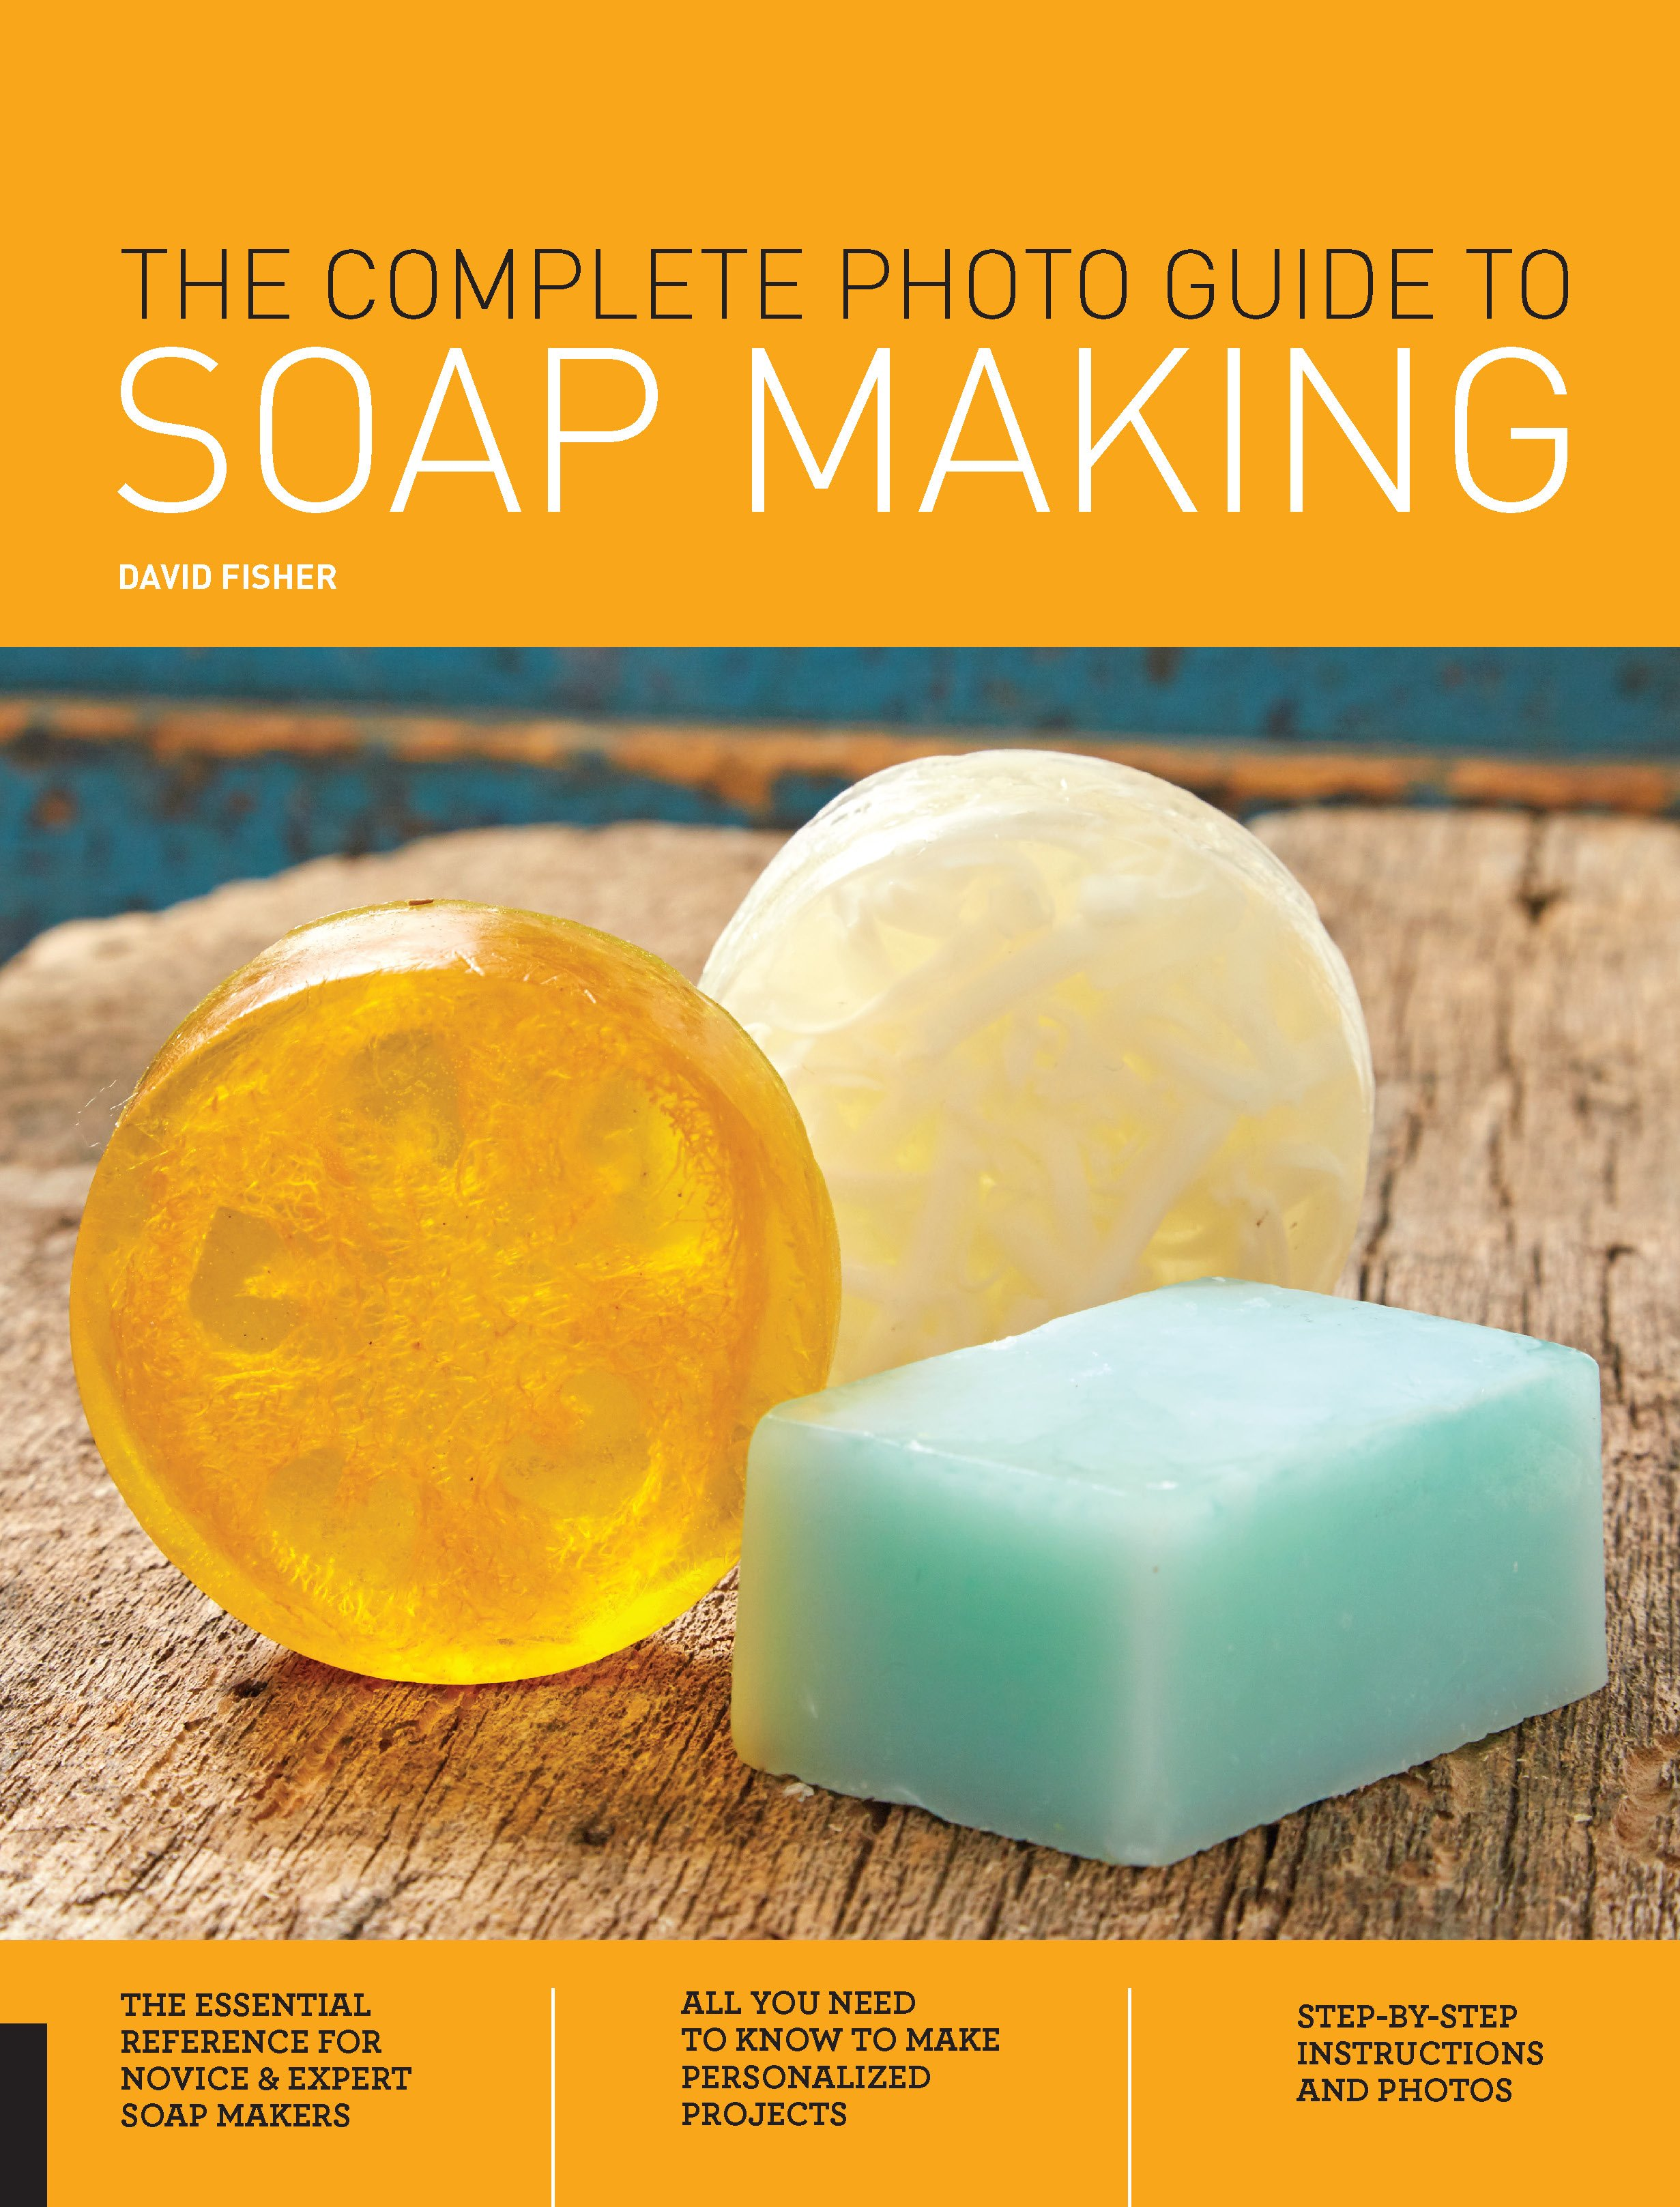 The Complete Photo Guide to Soap Making by David Fisher